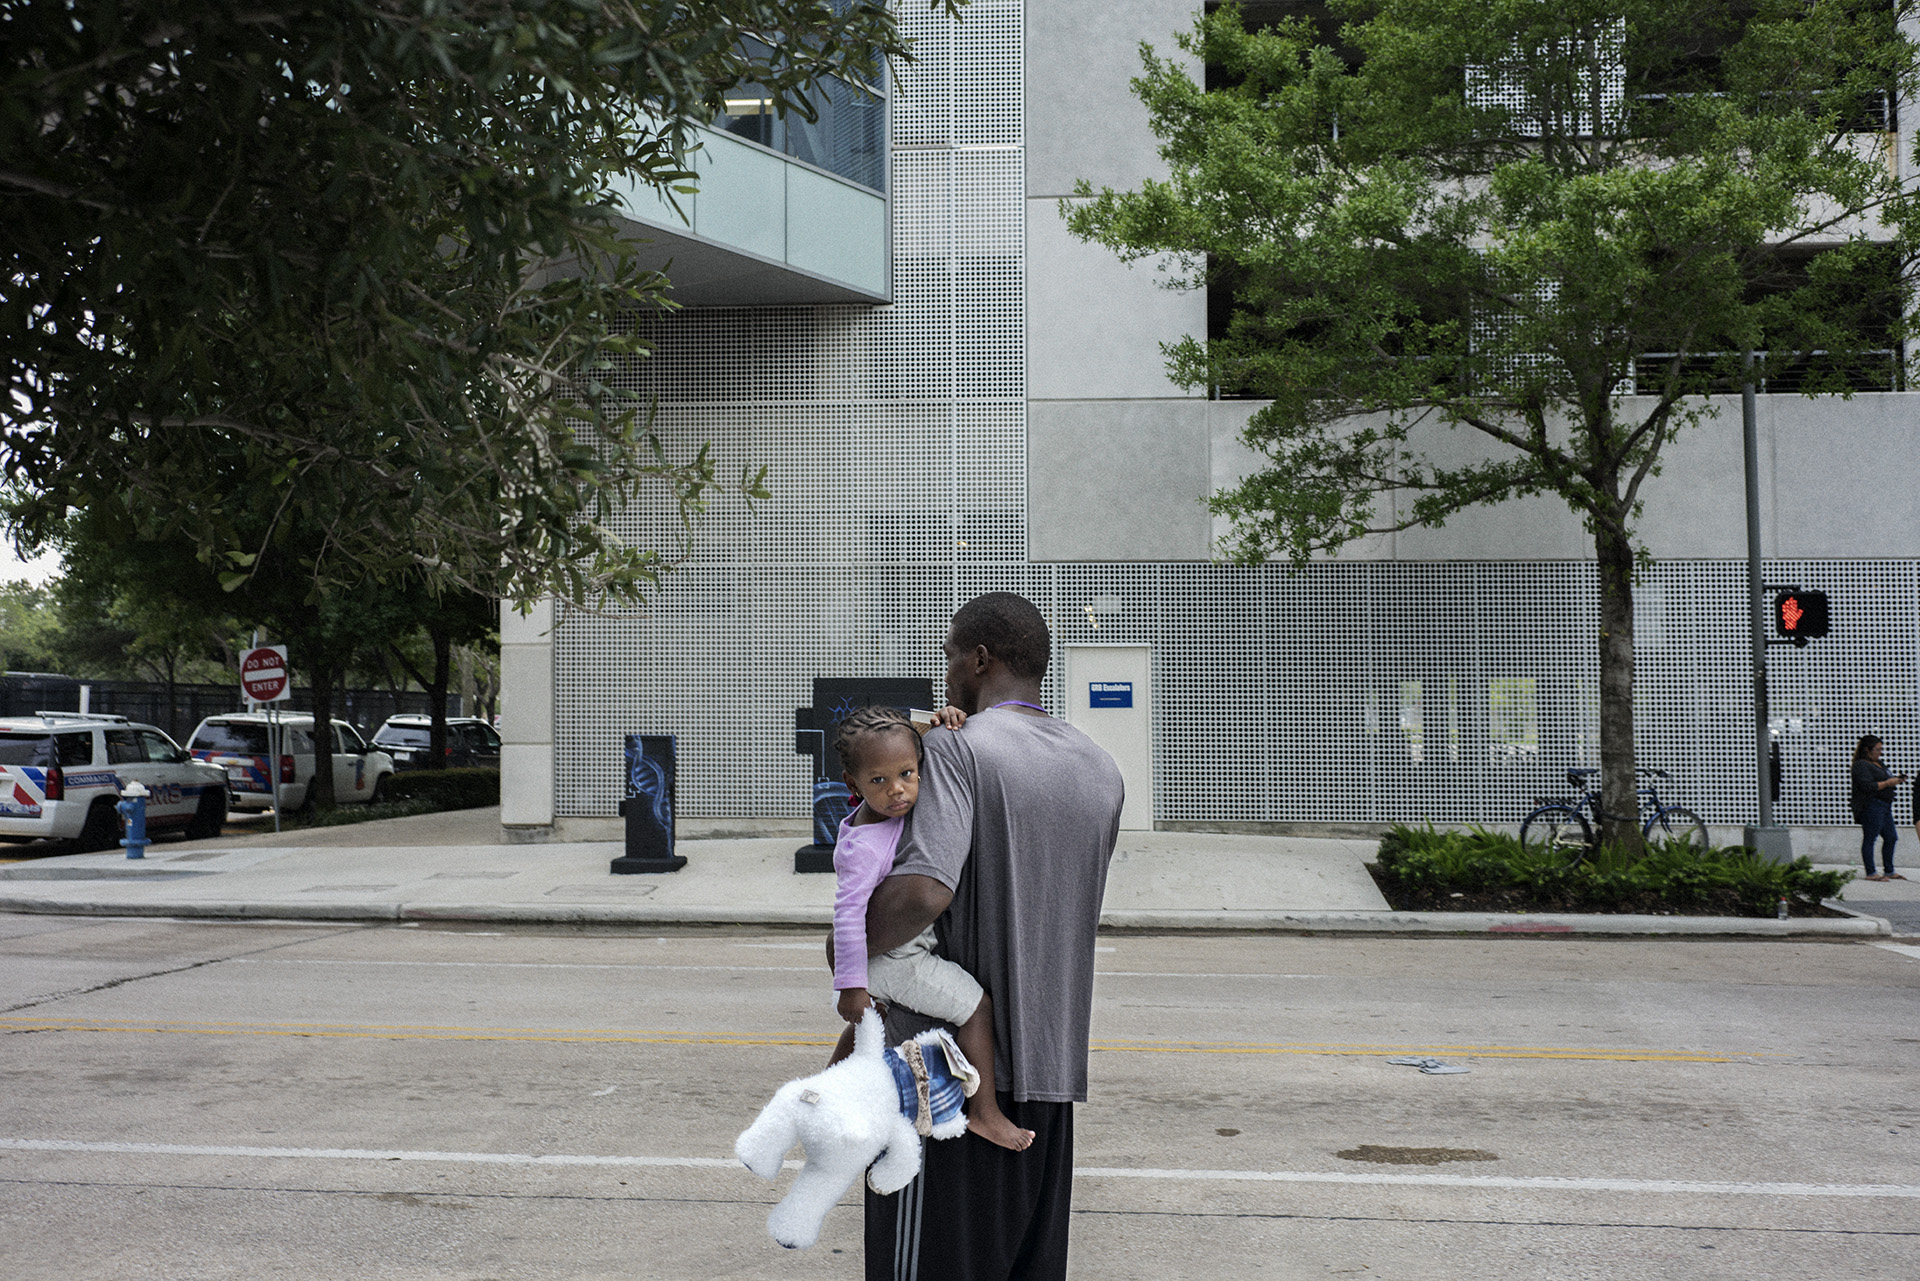 A little girl and her father outside of the Houston Convention Center.